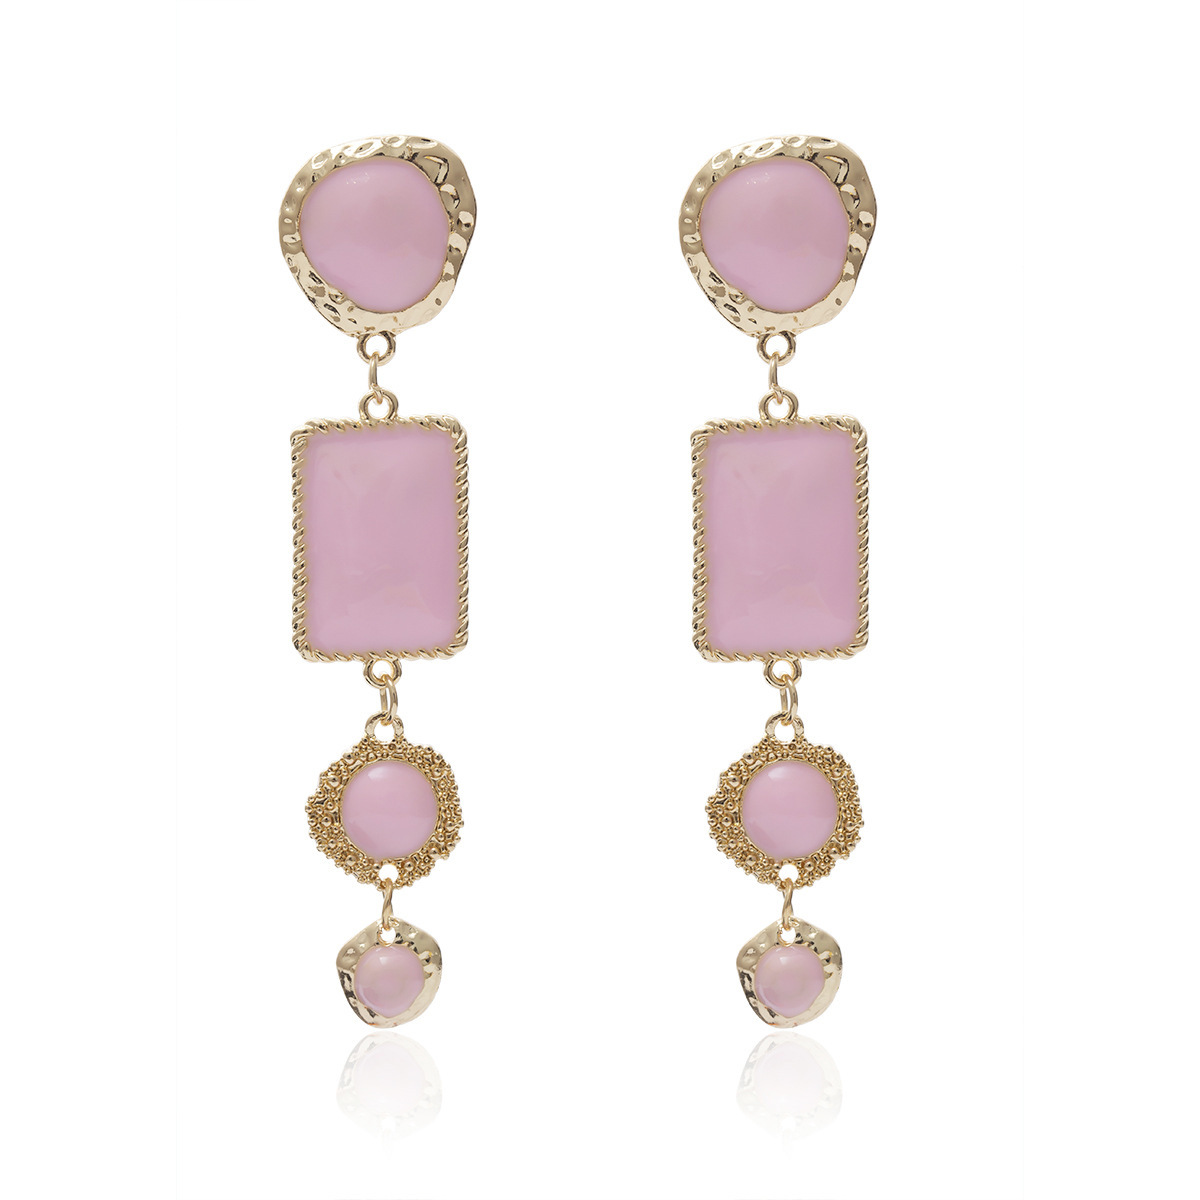 2019 New Korean Oil Painting Long Dangle Earrings Sweet Princess Pink Four Layer Geometric Circle Drop Earring Girl Jewelry Gift in Drop Earrings from Jewelry Accessories